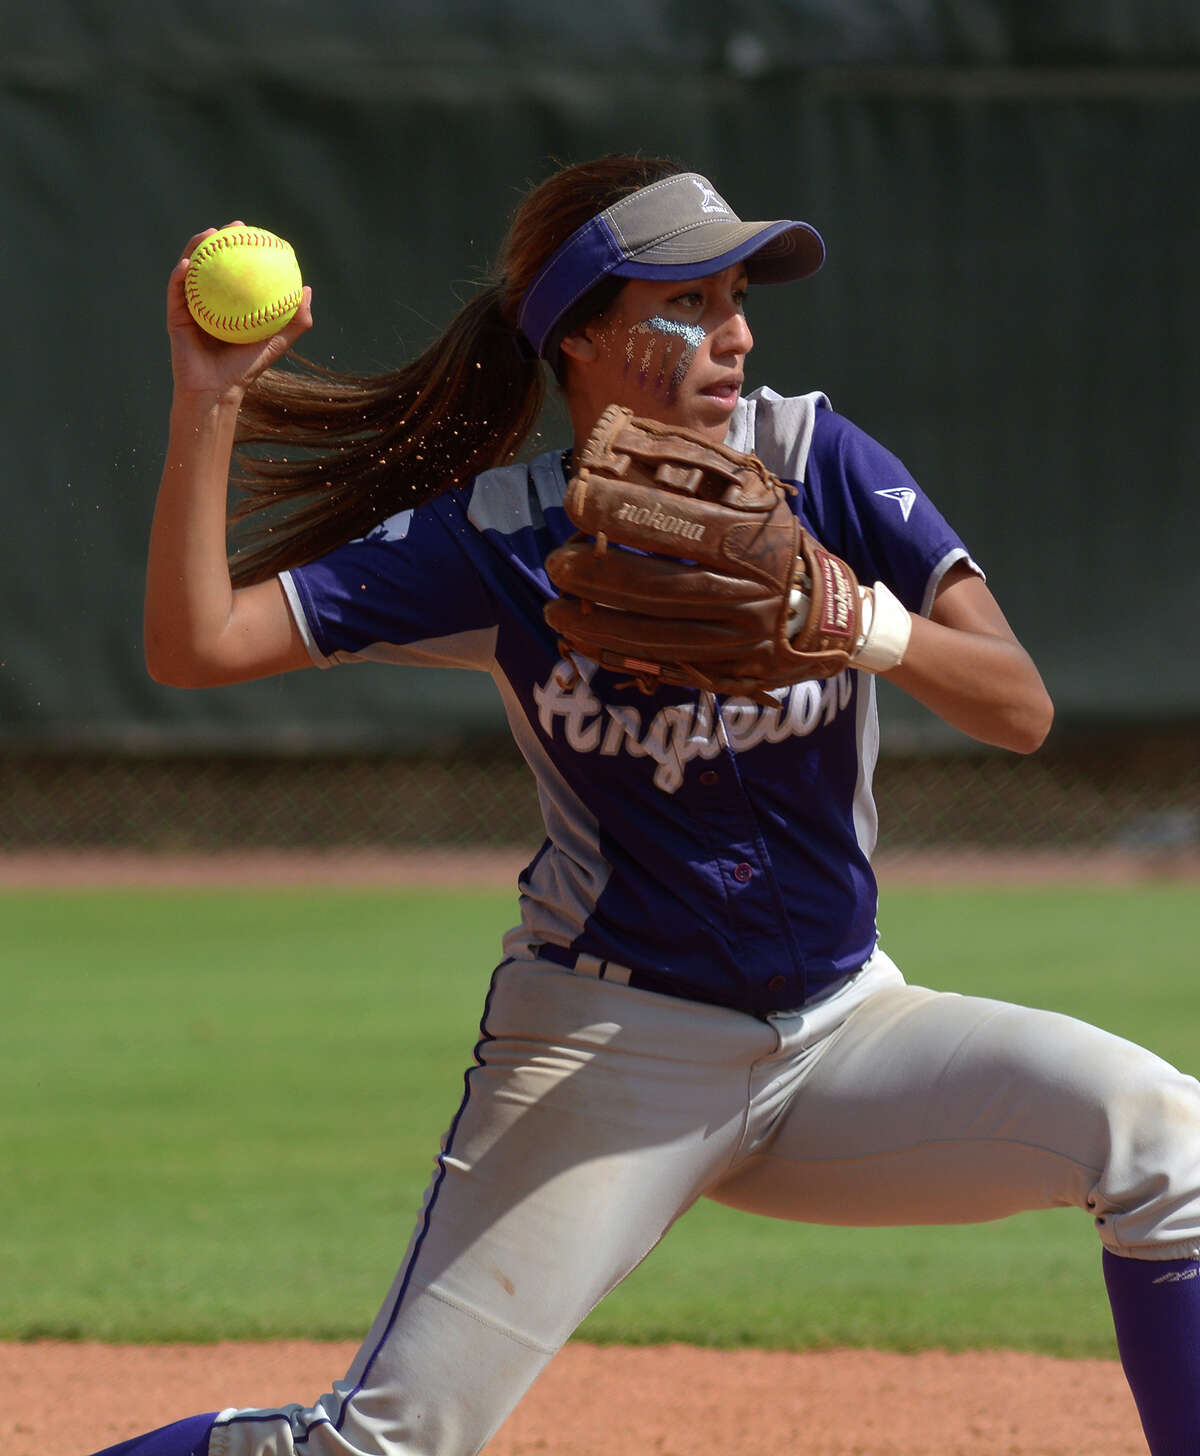 Angleton junior shortstop Brianna Cantu makes a play to second baseman Mackenzie Kotrla in the bottom of the 4th inning of the Wildcats Class 5A semifinal matchup with Gregory-Portland at the 2016 UIL Softball State Championships at McCombs Field in Austin on Friday, June 3, 2016. (Photo by Jerry Baker/Freelance)